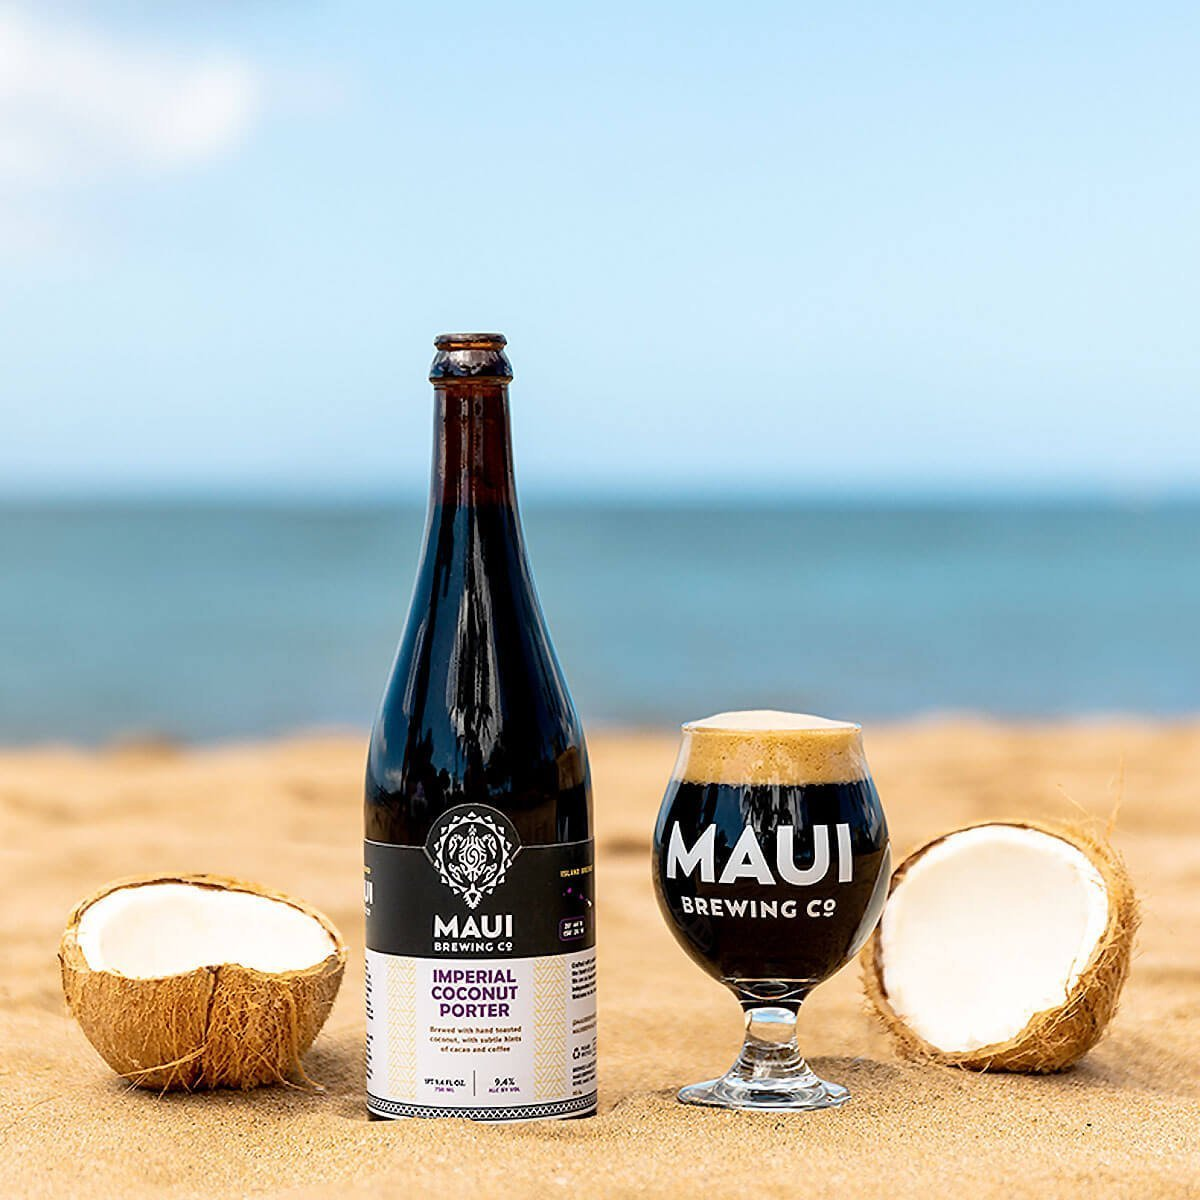 Imperial Coconut Porter by Maui Brewing Company